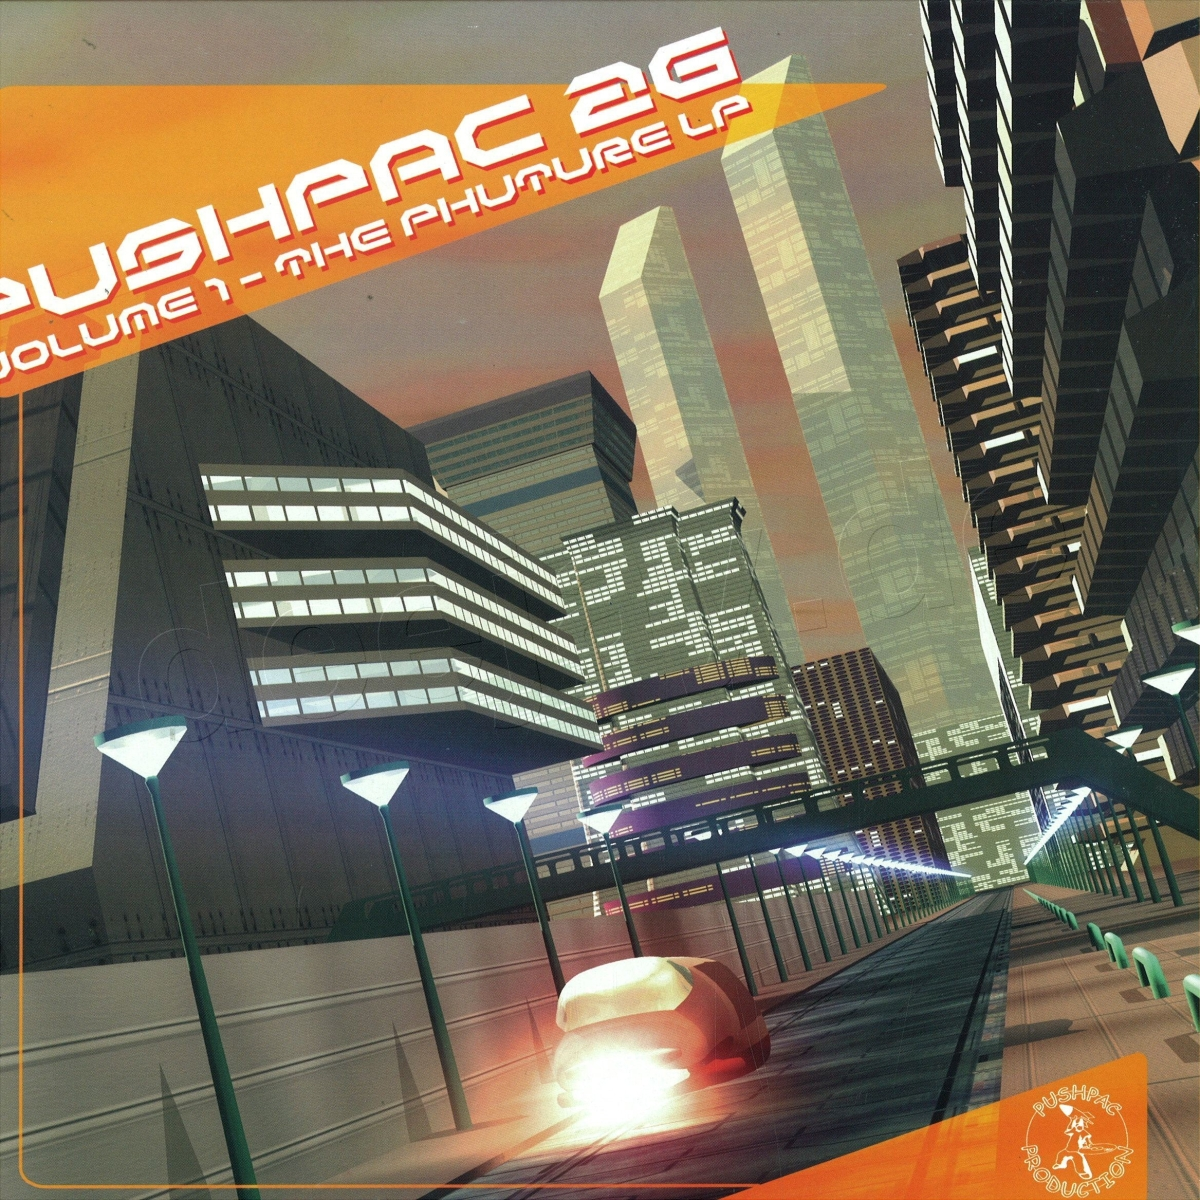 Buy vinyl artist% Pushpac 2G Volume One - The Phuture LP for sale